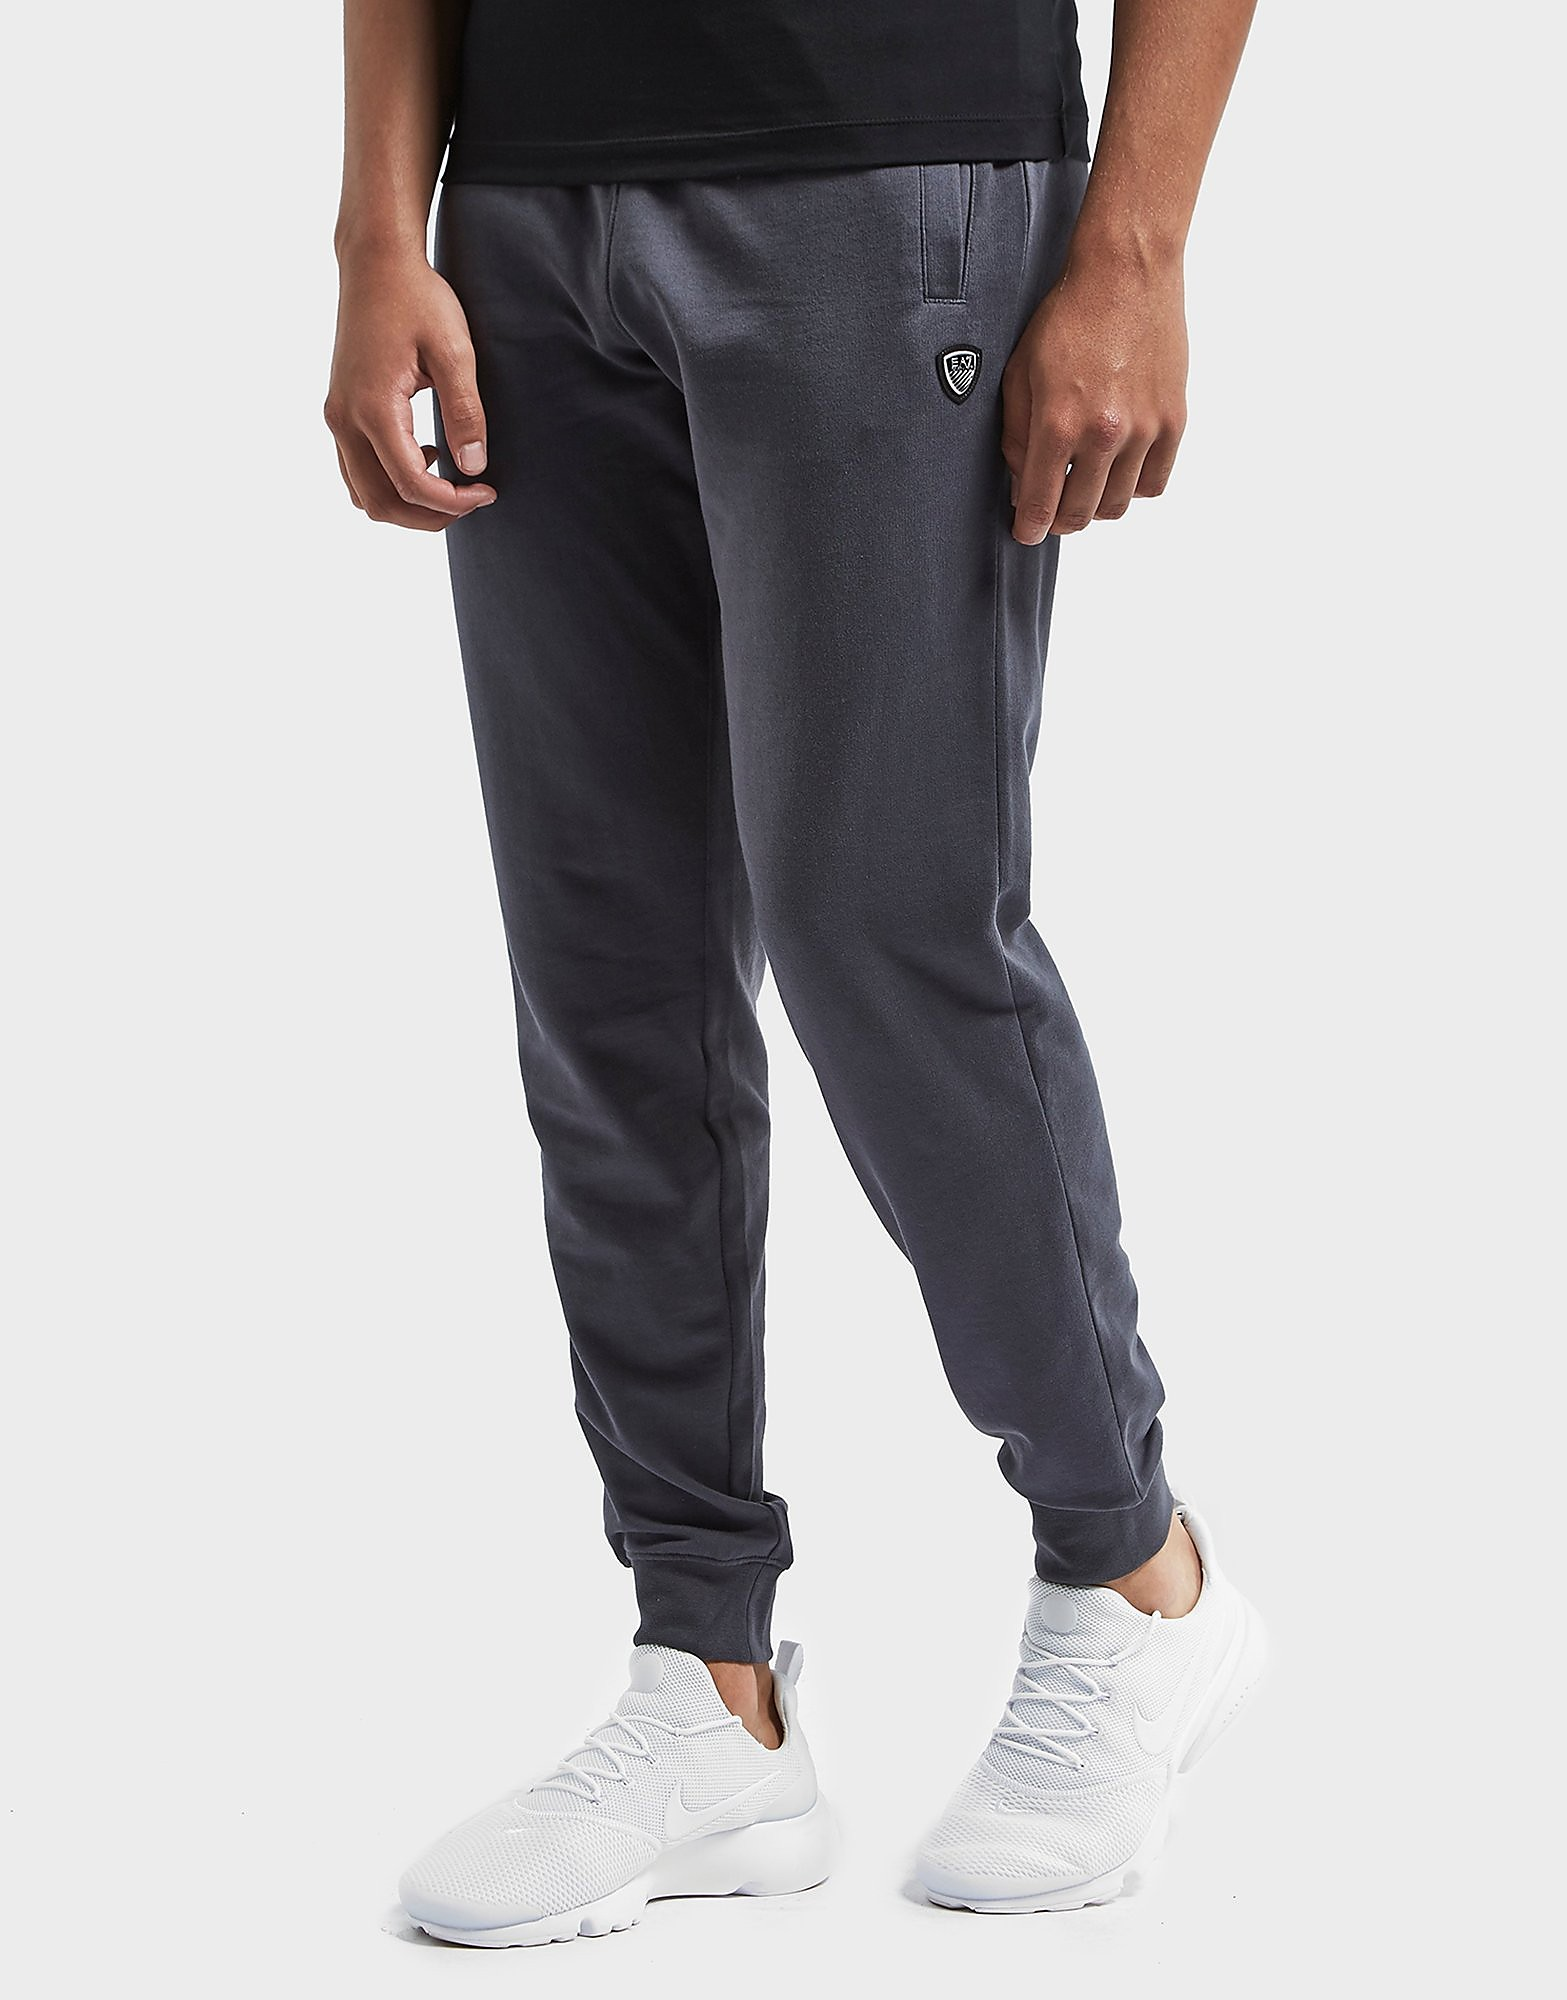 Emporio Armani EA7 Shield Track Pants